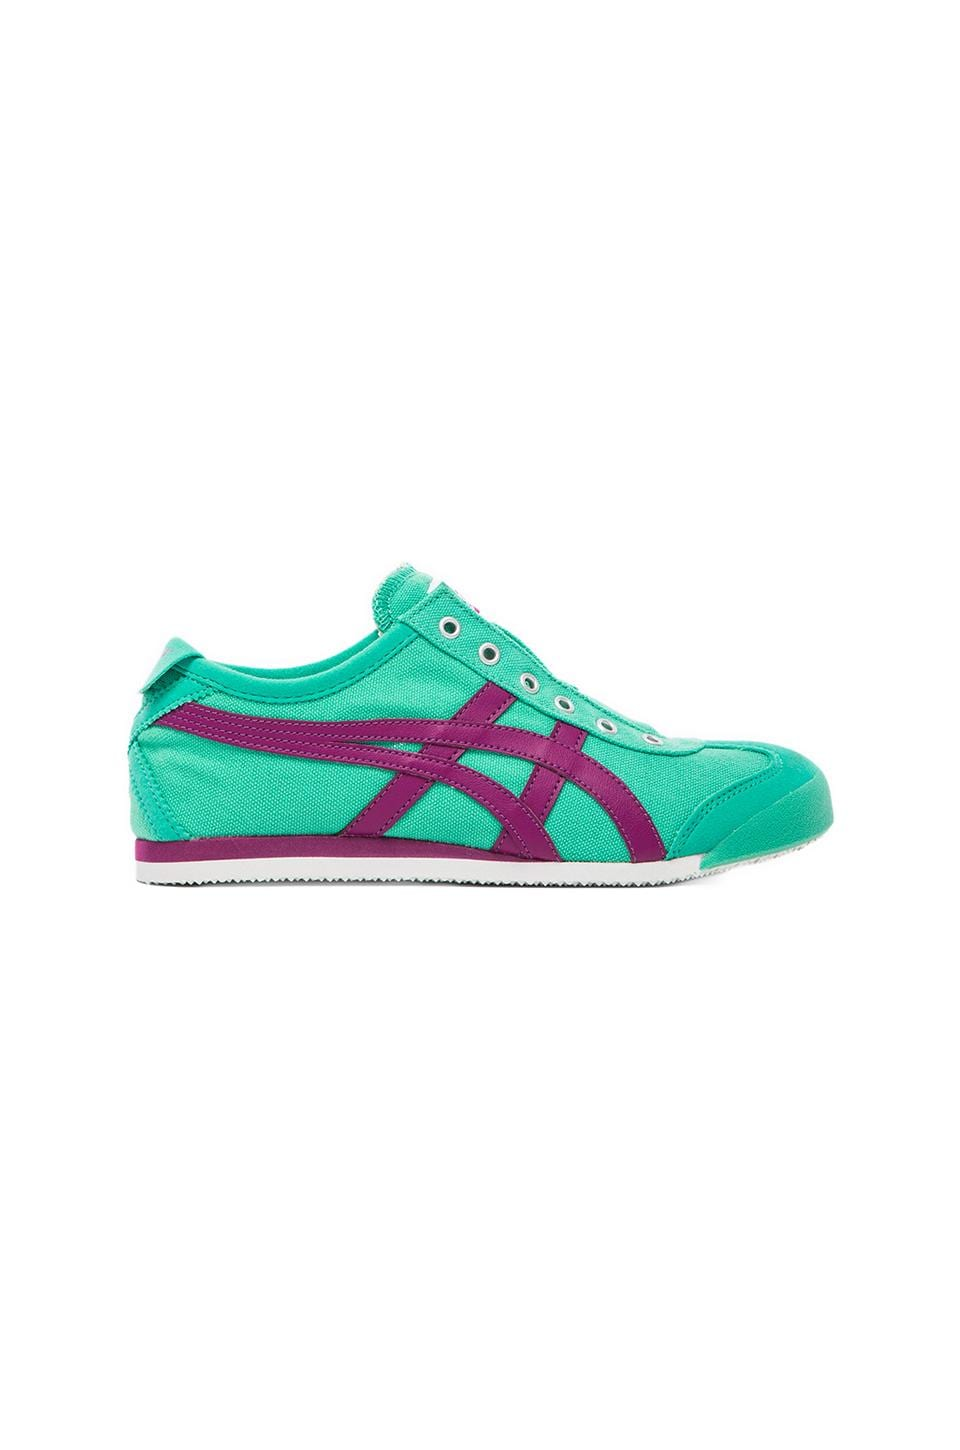 Onitsuka Tiger Mexico 66 Slip On in Mint & Purple